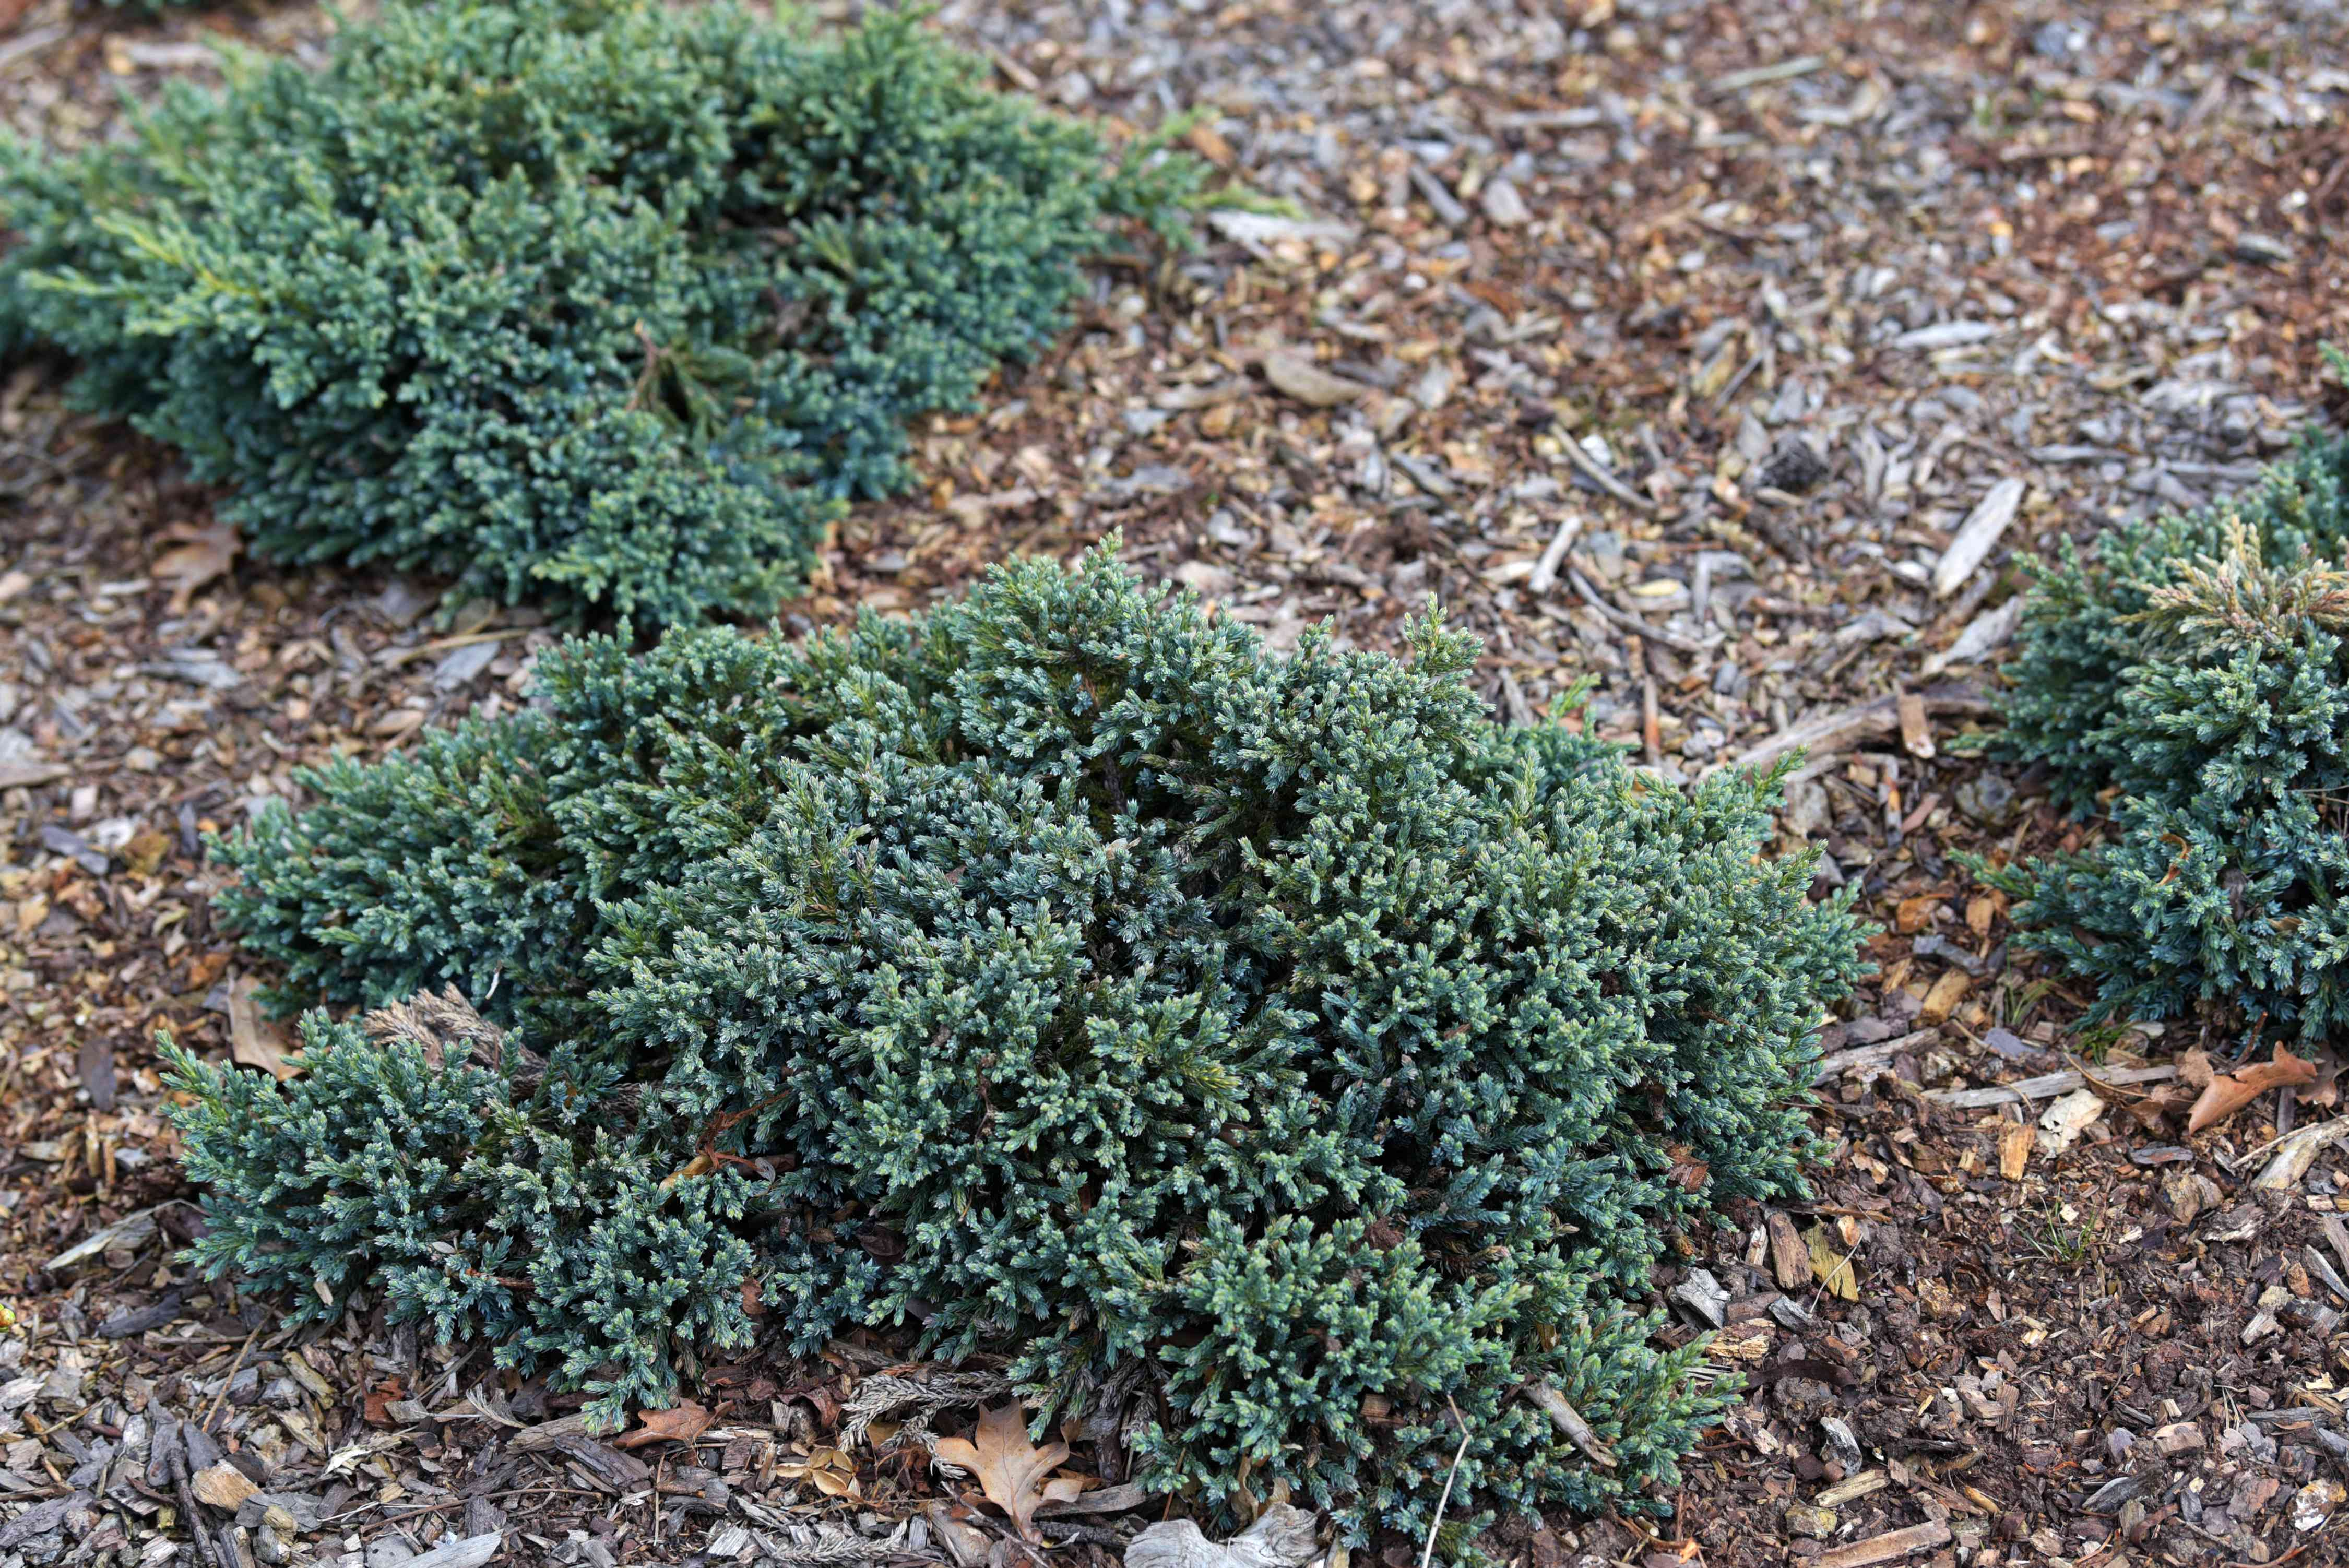 Blue star juniper shrubs surrounded by mulch with silvery-blue foliage